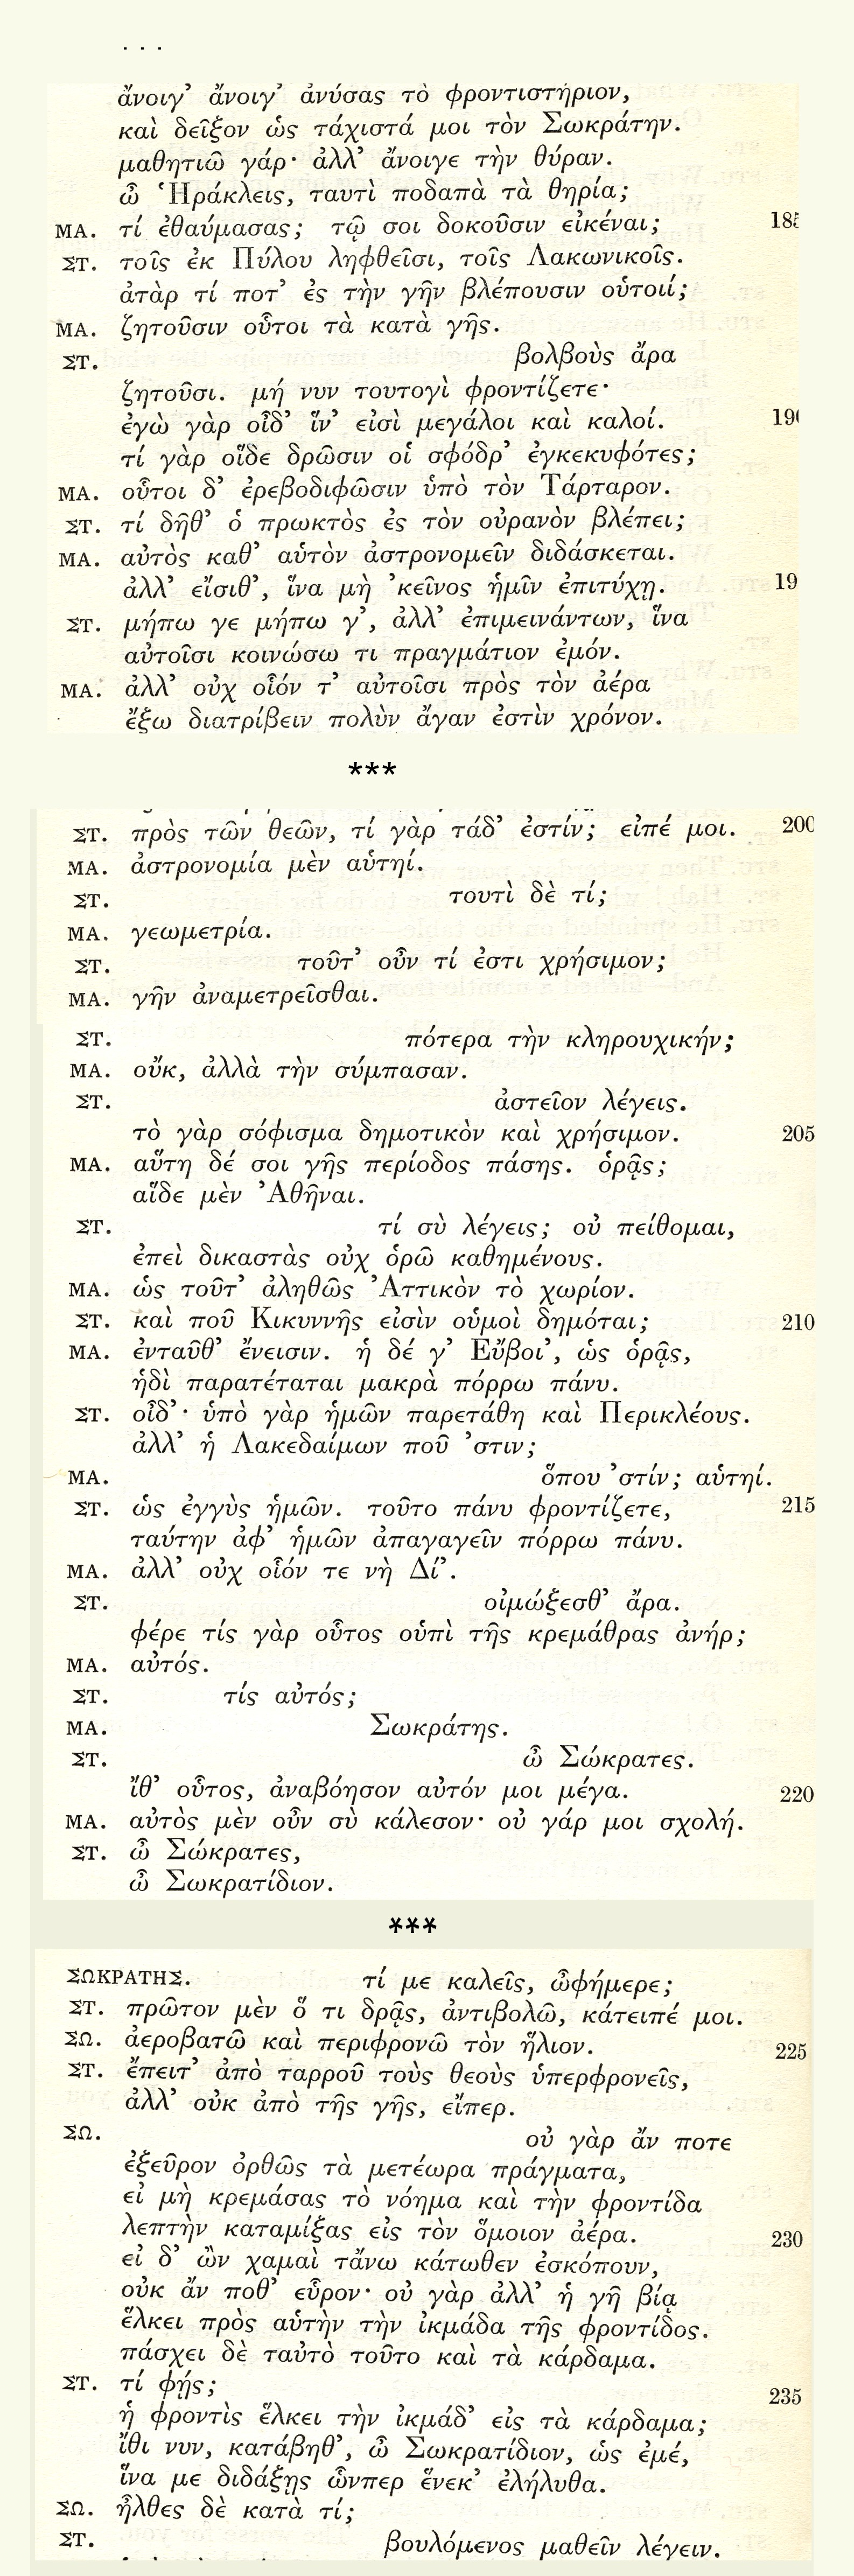 Aristophanes Clouds 181-239